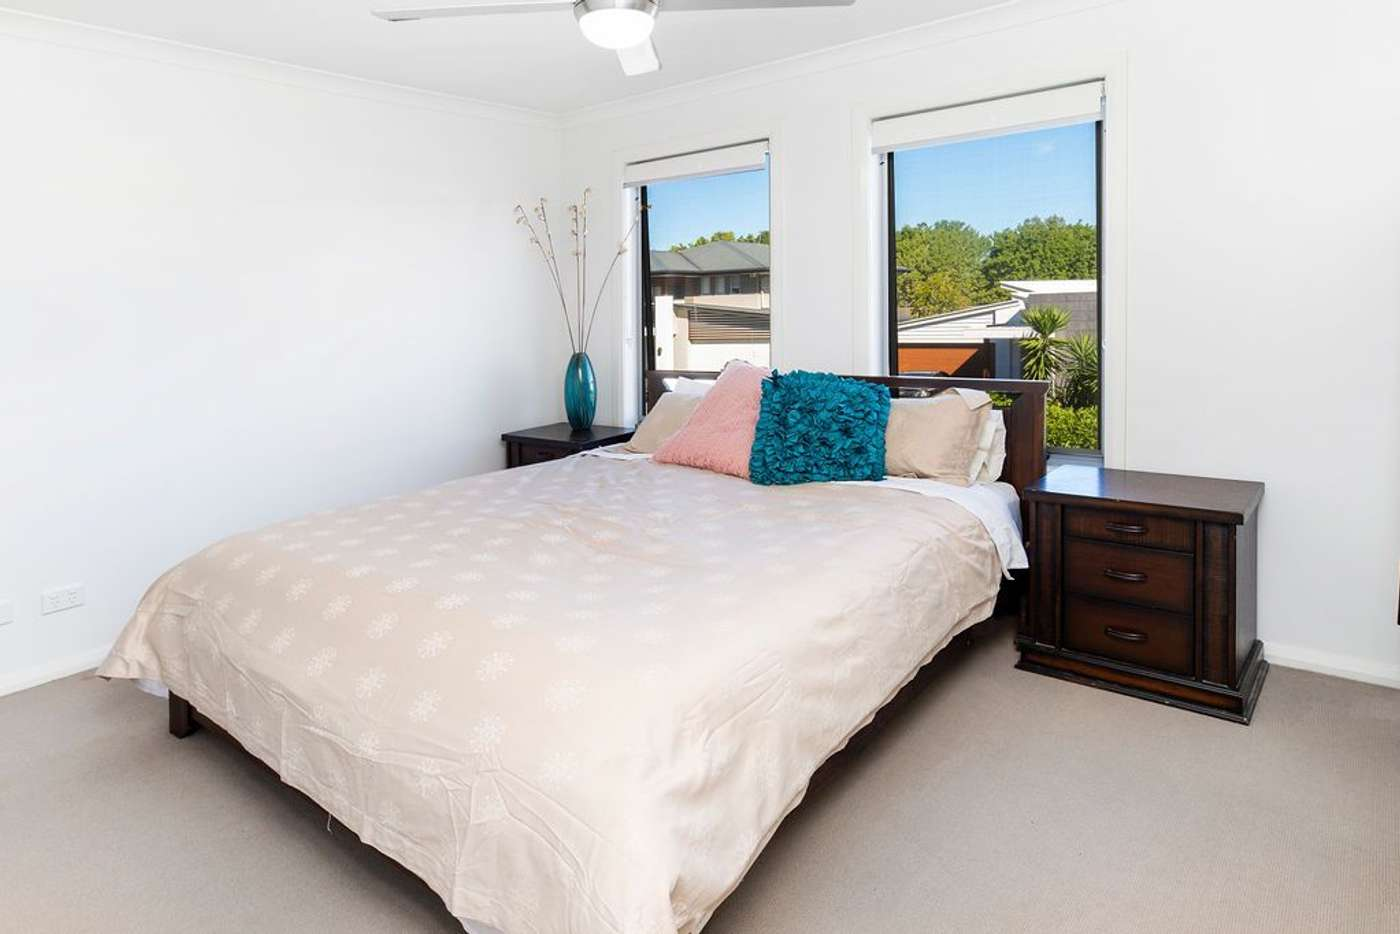 Sixth view of Homely house listing, 25 Azure Way, Hope Island QLD 4212